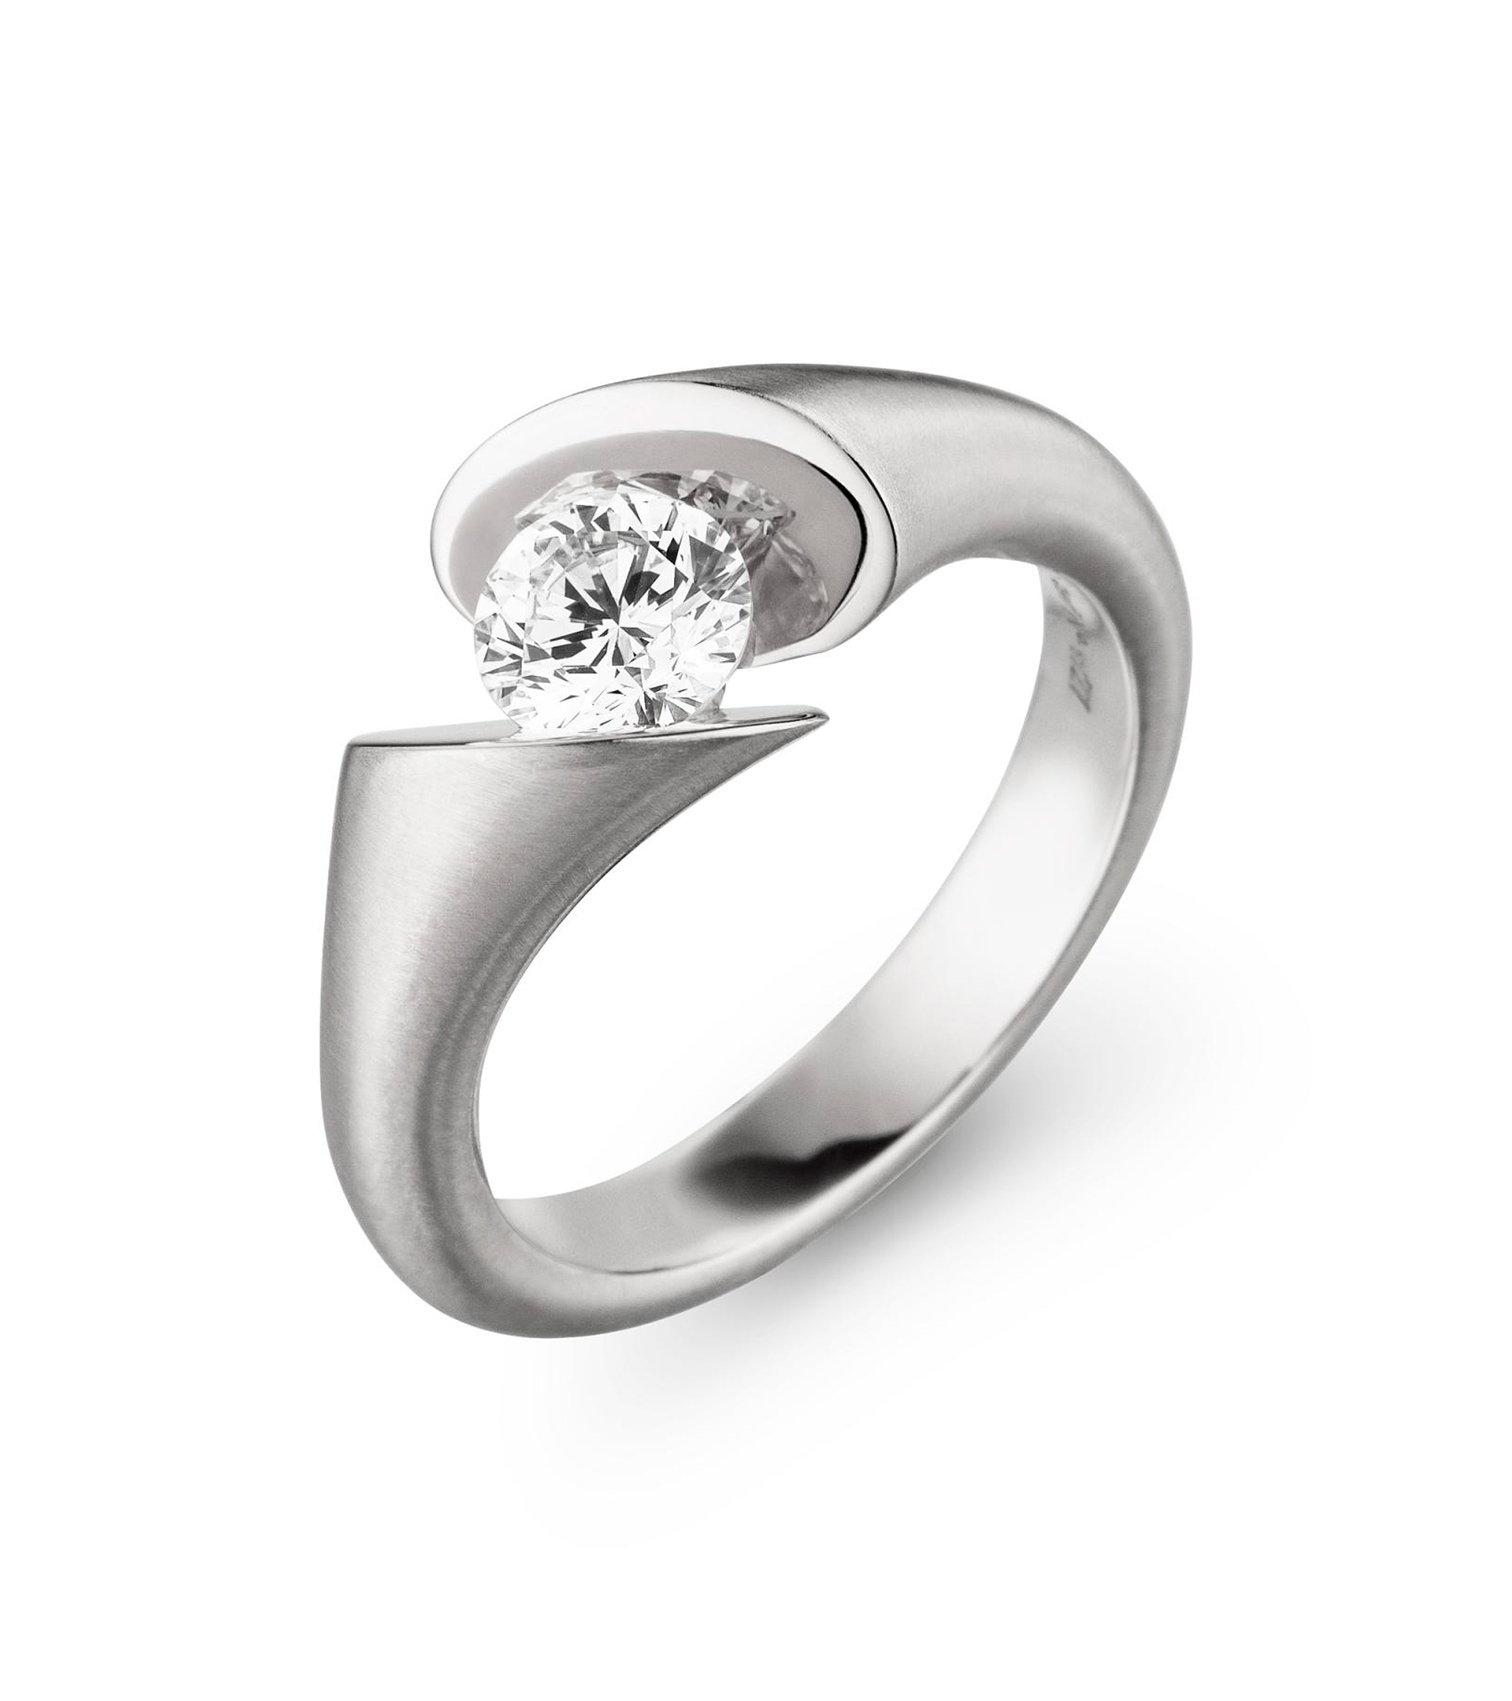 Engagement ring, or just a beautiful ring, with a natural, brilliant cut diamond.